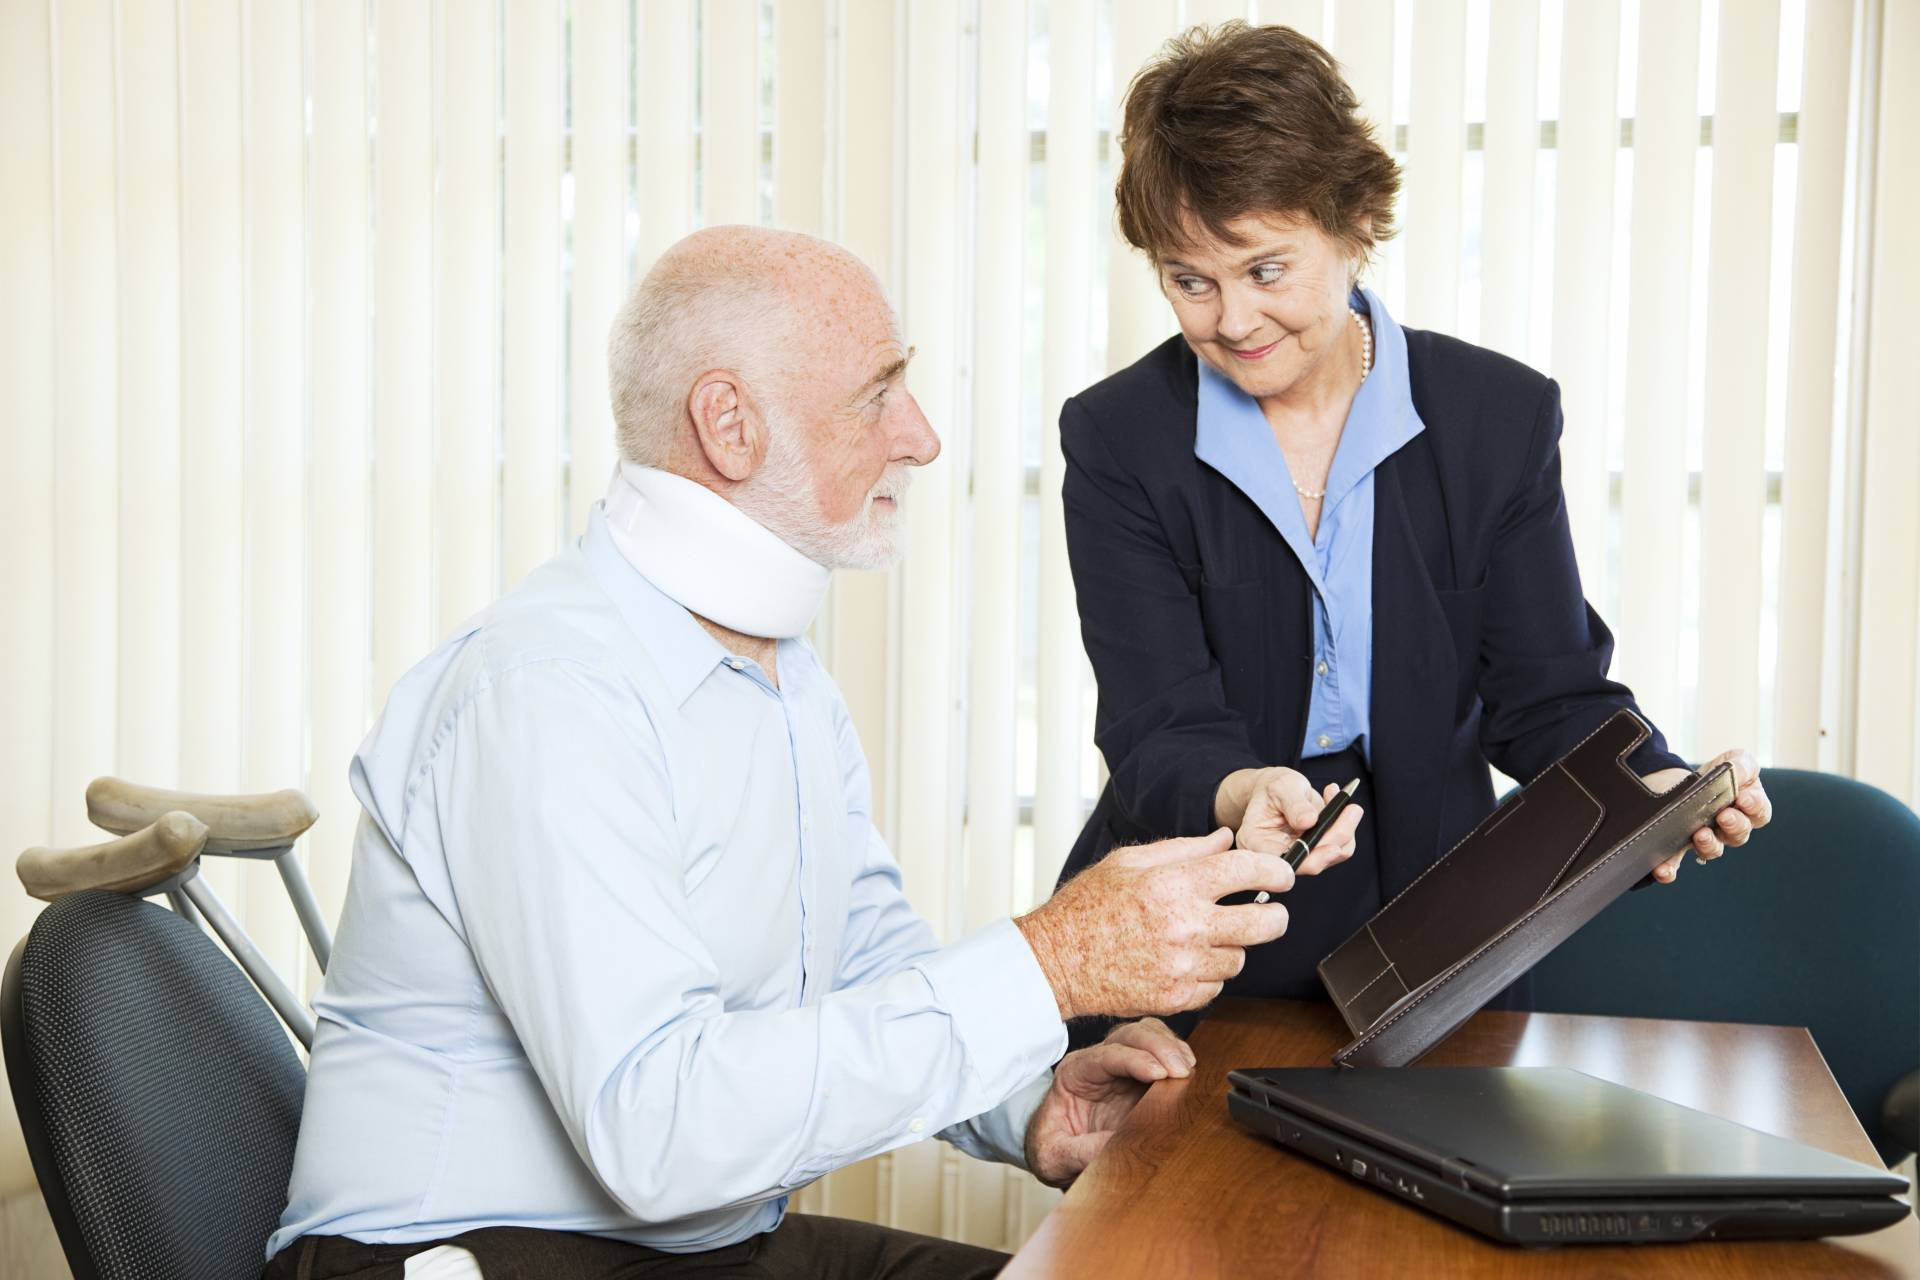 Personal injury lawyer gives free consultation